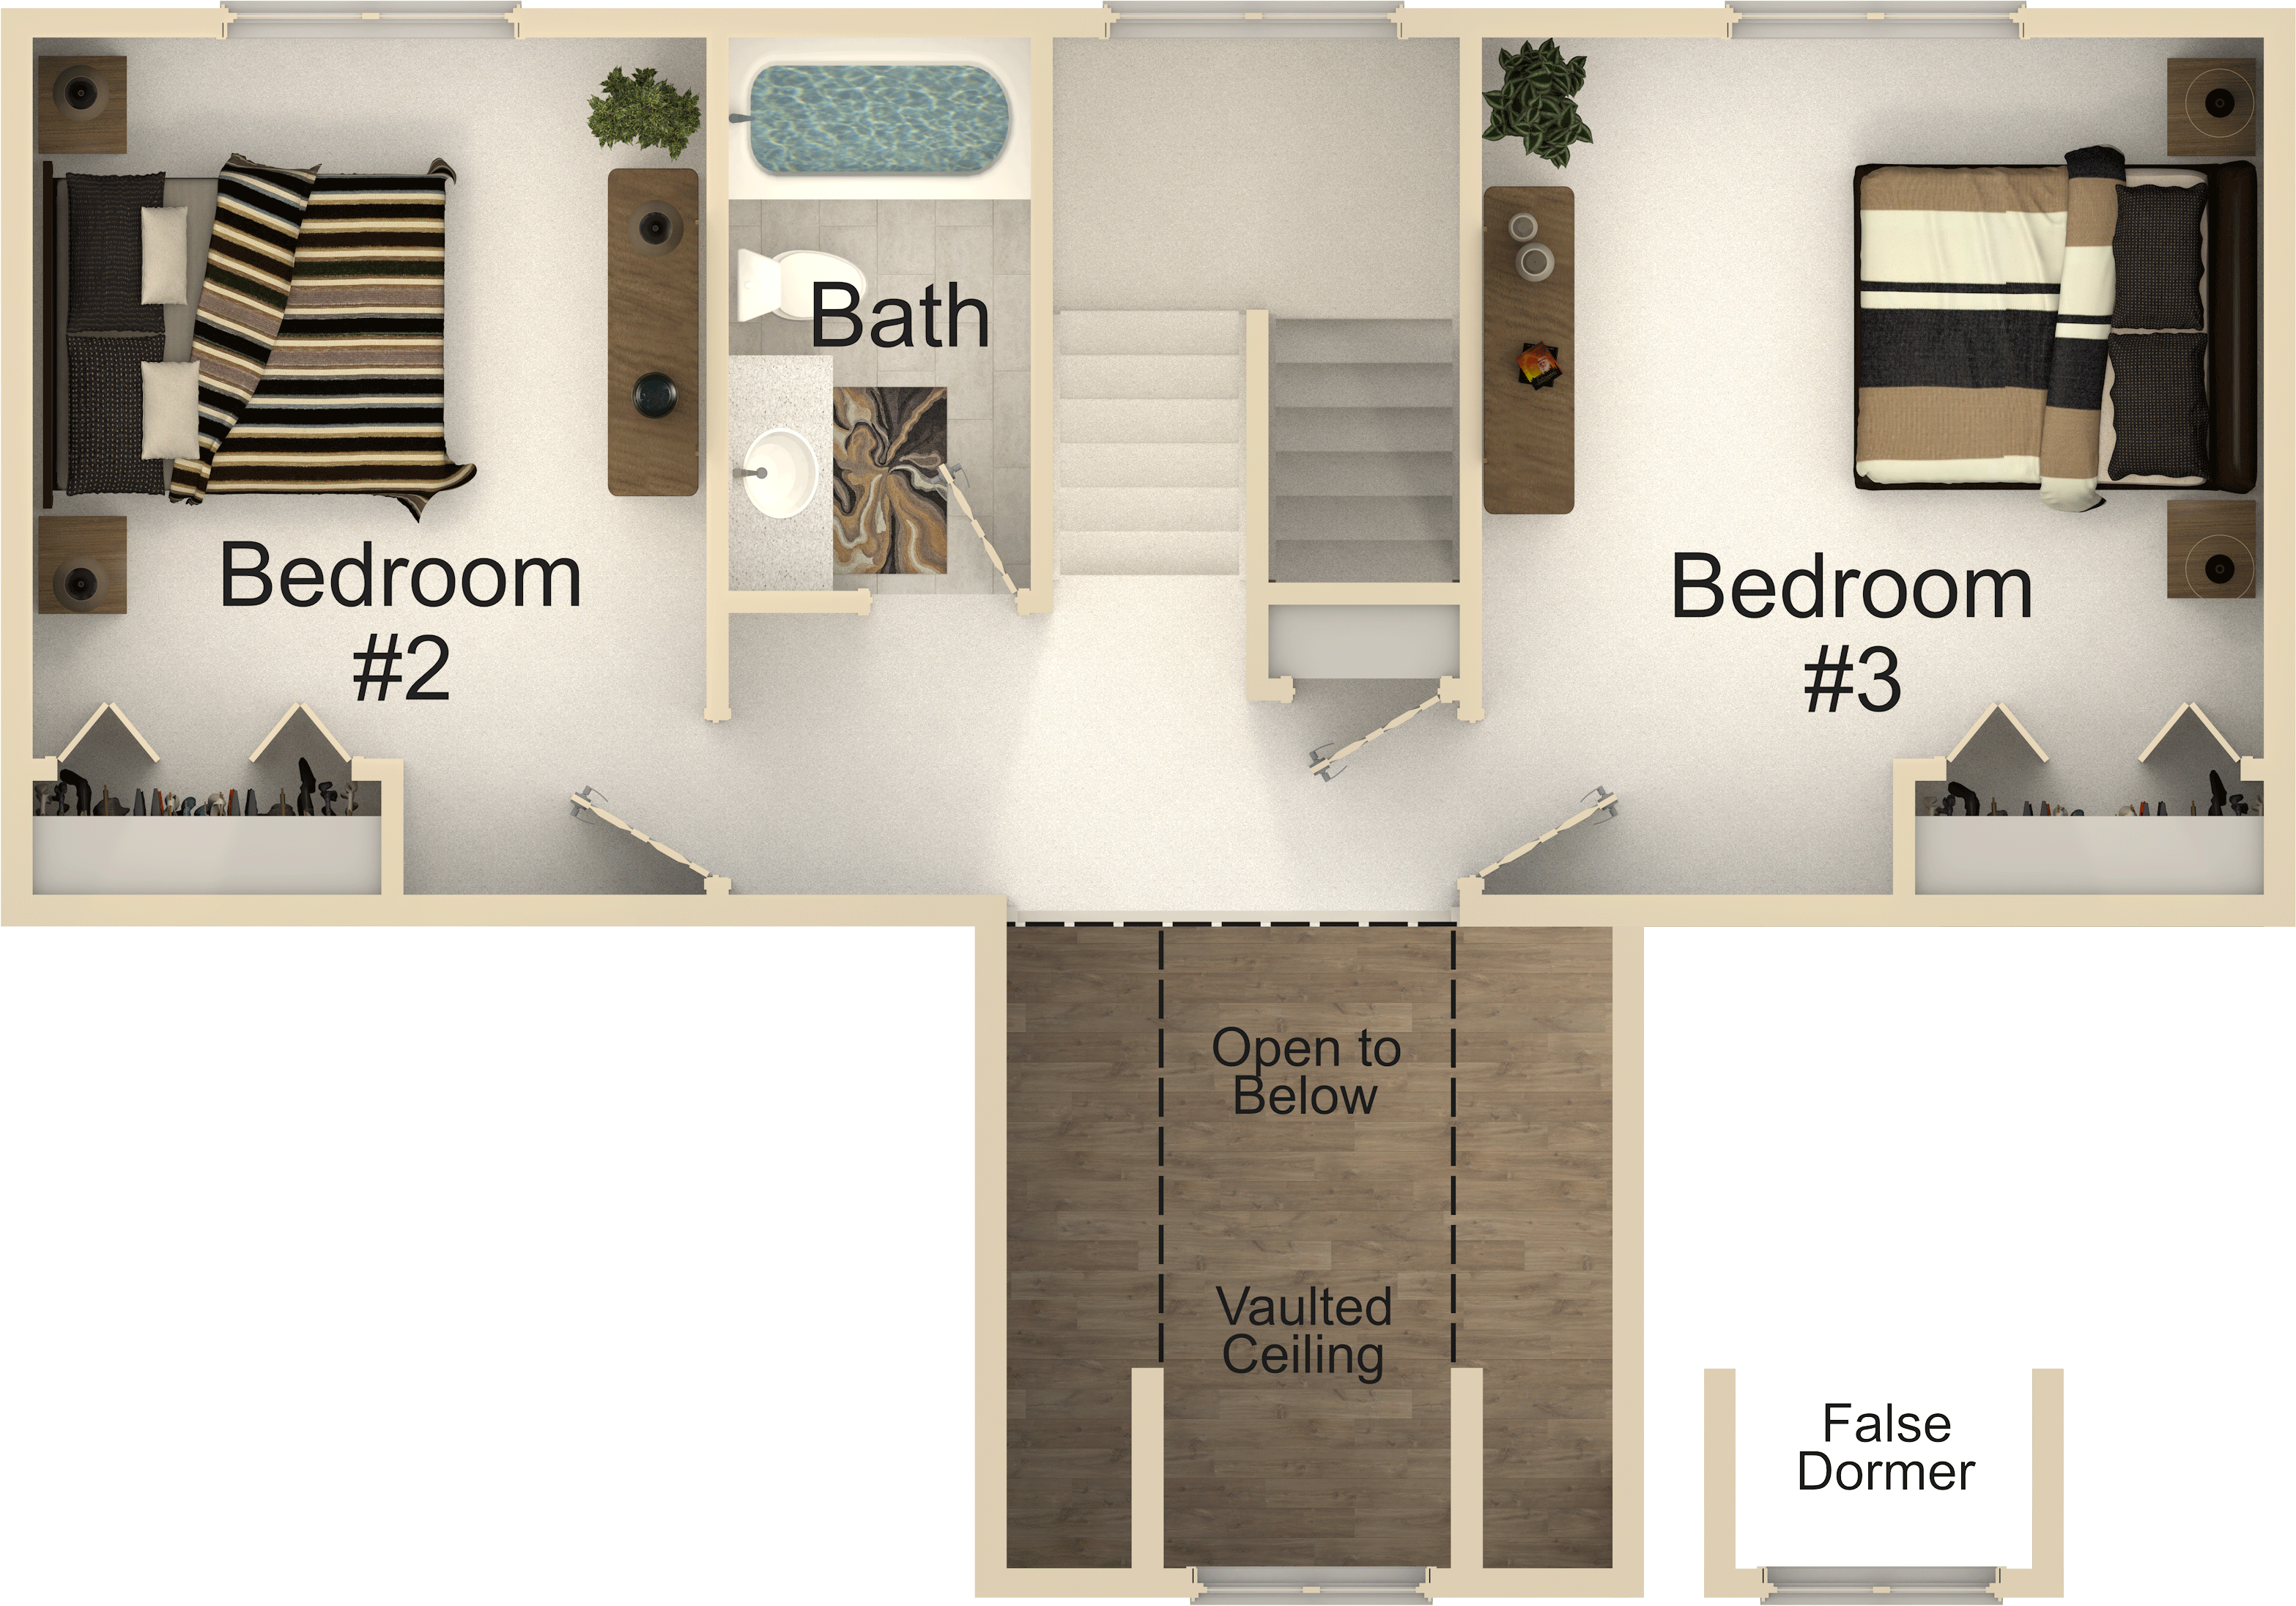 Fairmont---Plan-(Second-Floor).png